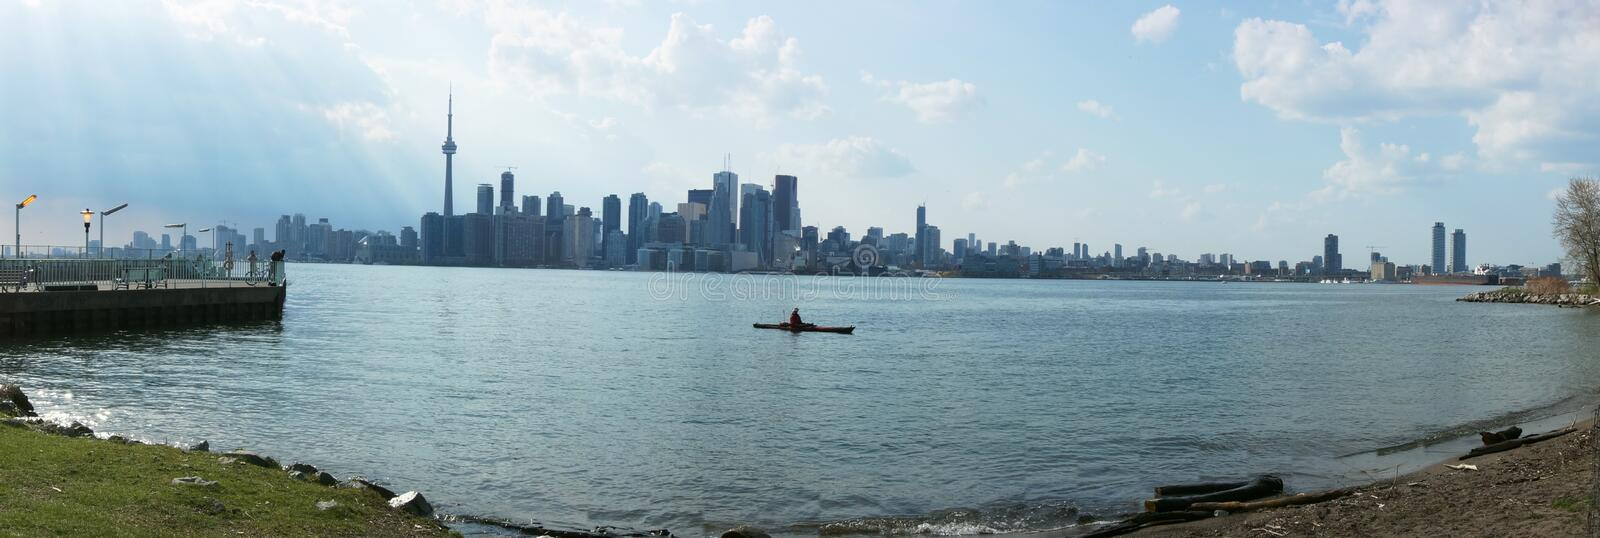 View of Toronto from Across the Lake royalty free stock photo